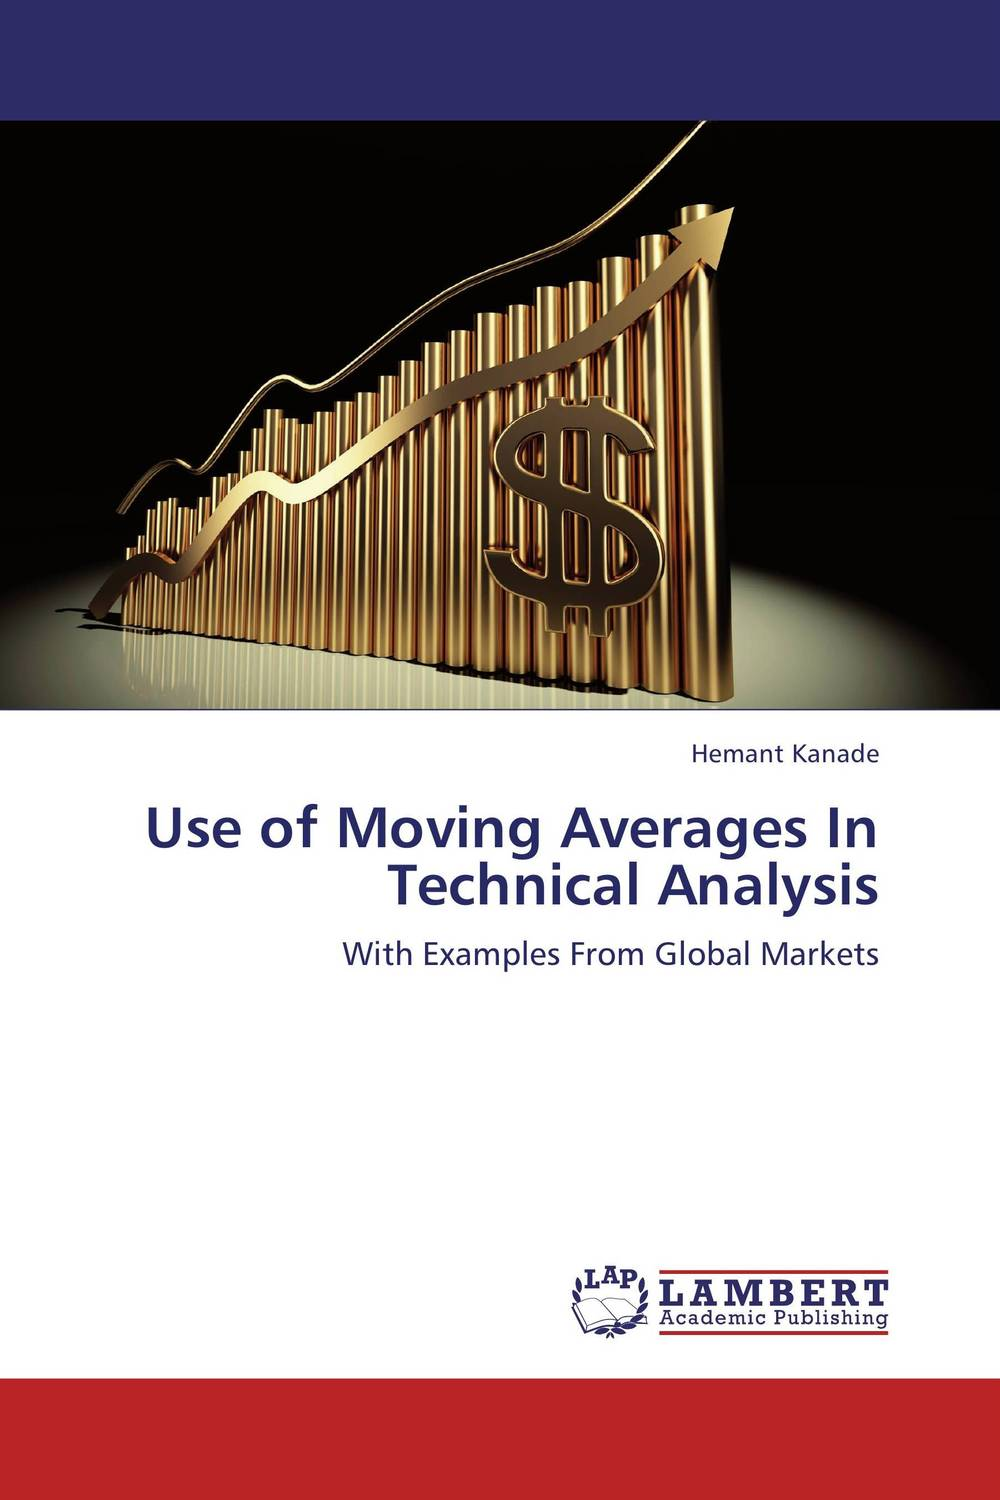 Use of Moving Averages In Technical Analysis richard lehman far from random using investor behavior and trend analysis to forecast market movement